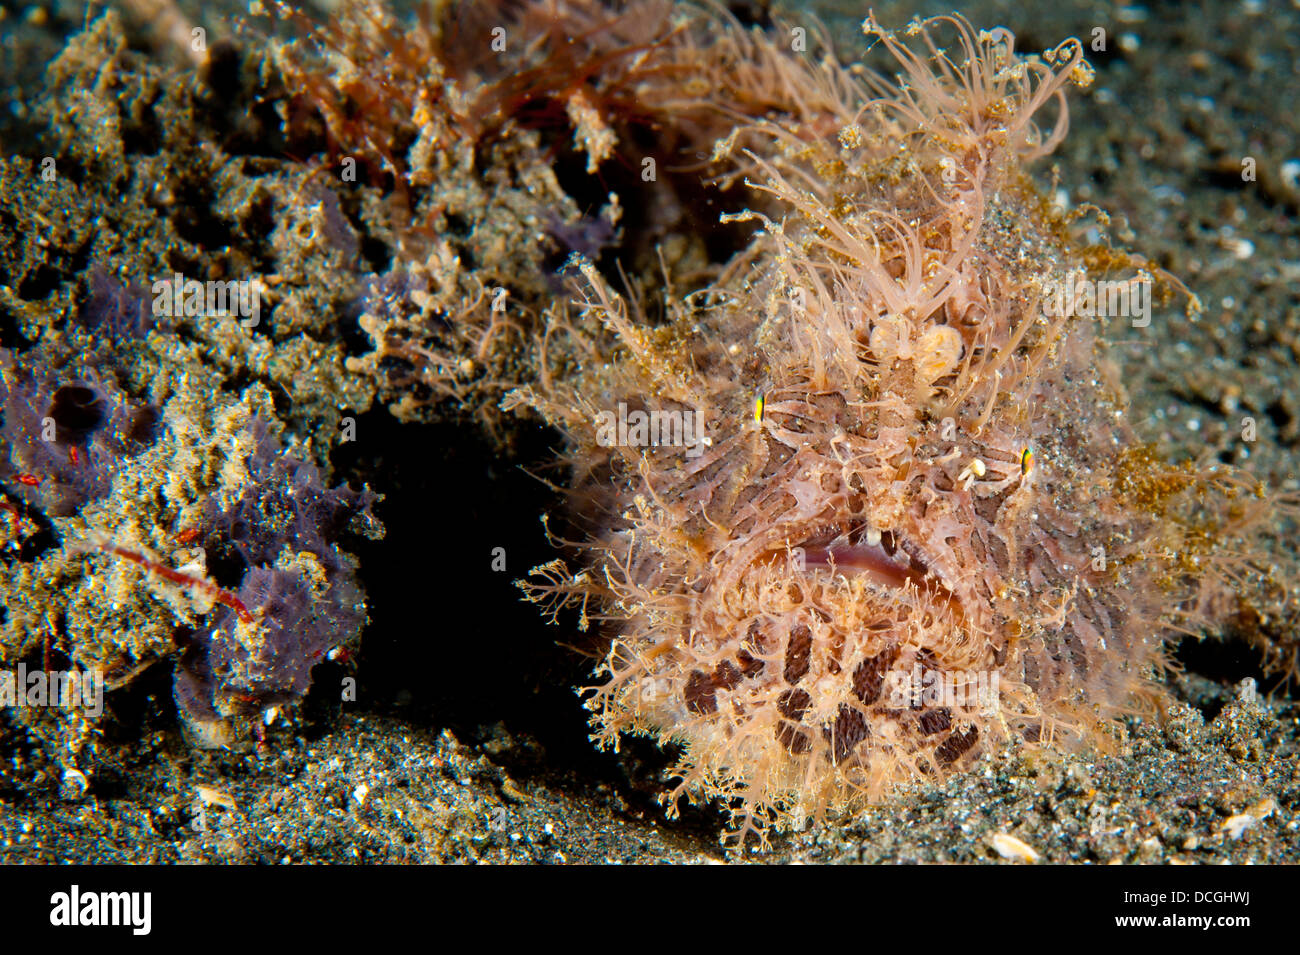 Striated frogfish (Antennarius striatus), red and pink in color with large appendages, Lembeh Strait, Indonesia. - Stock Image